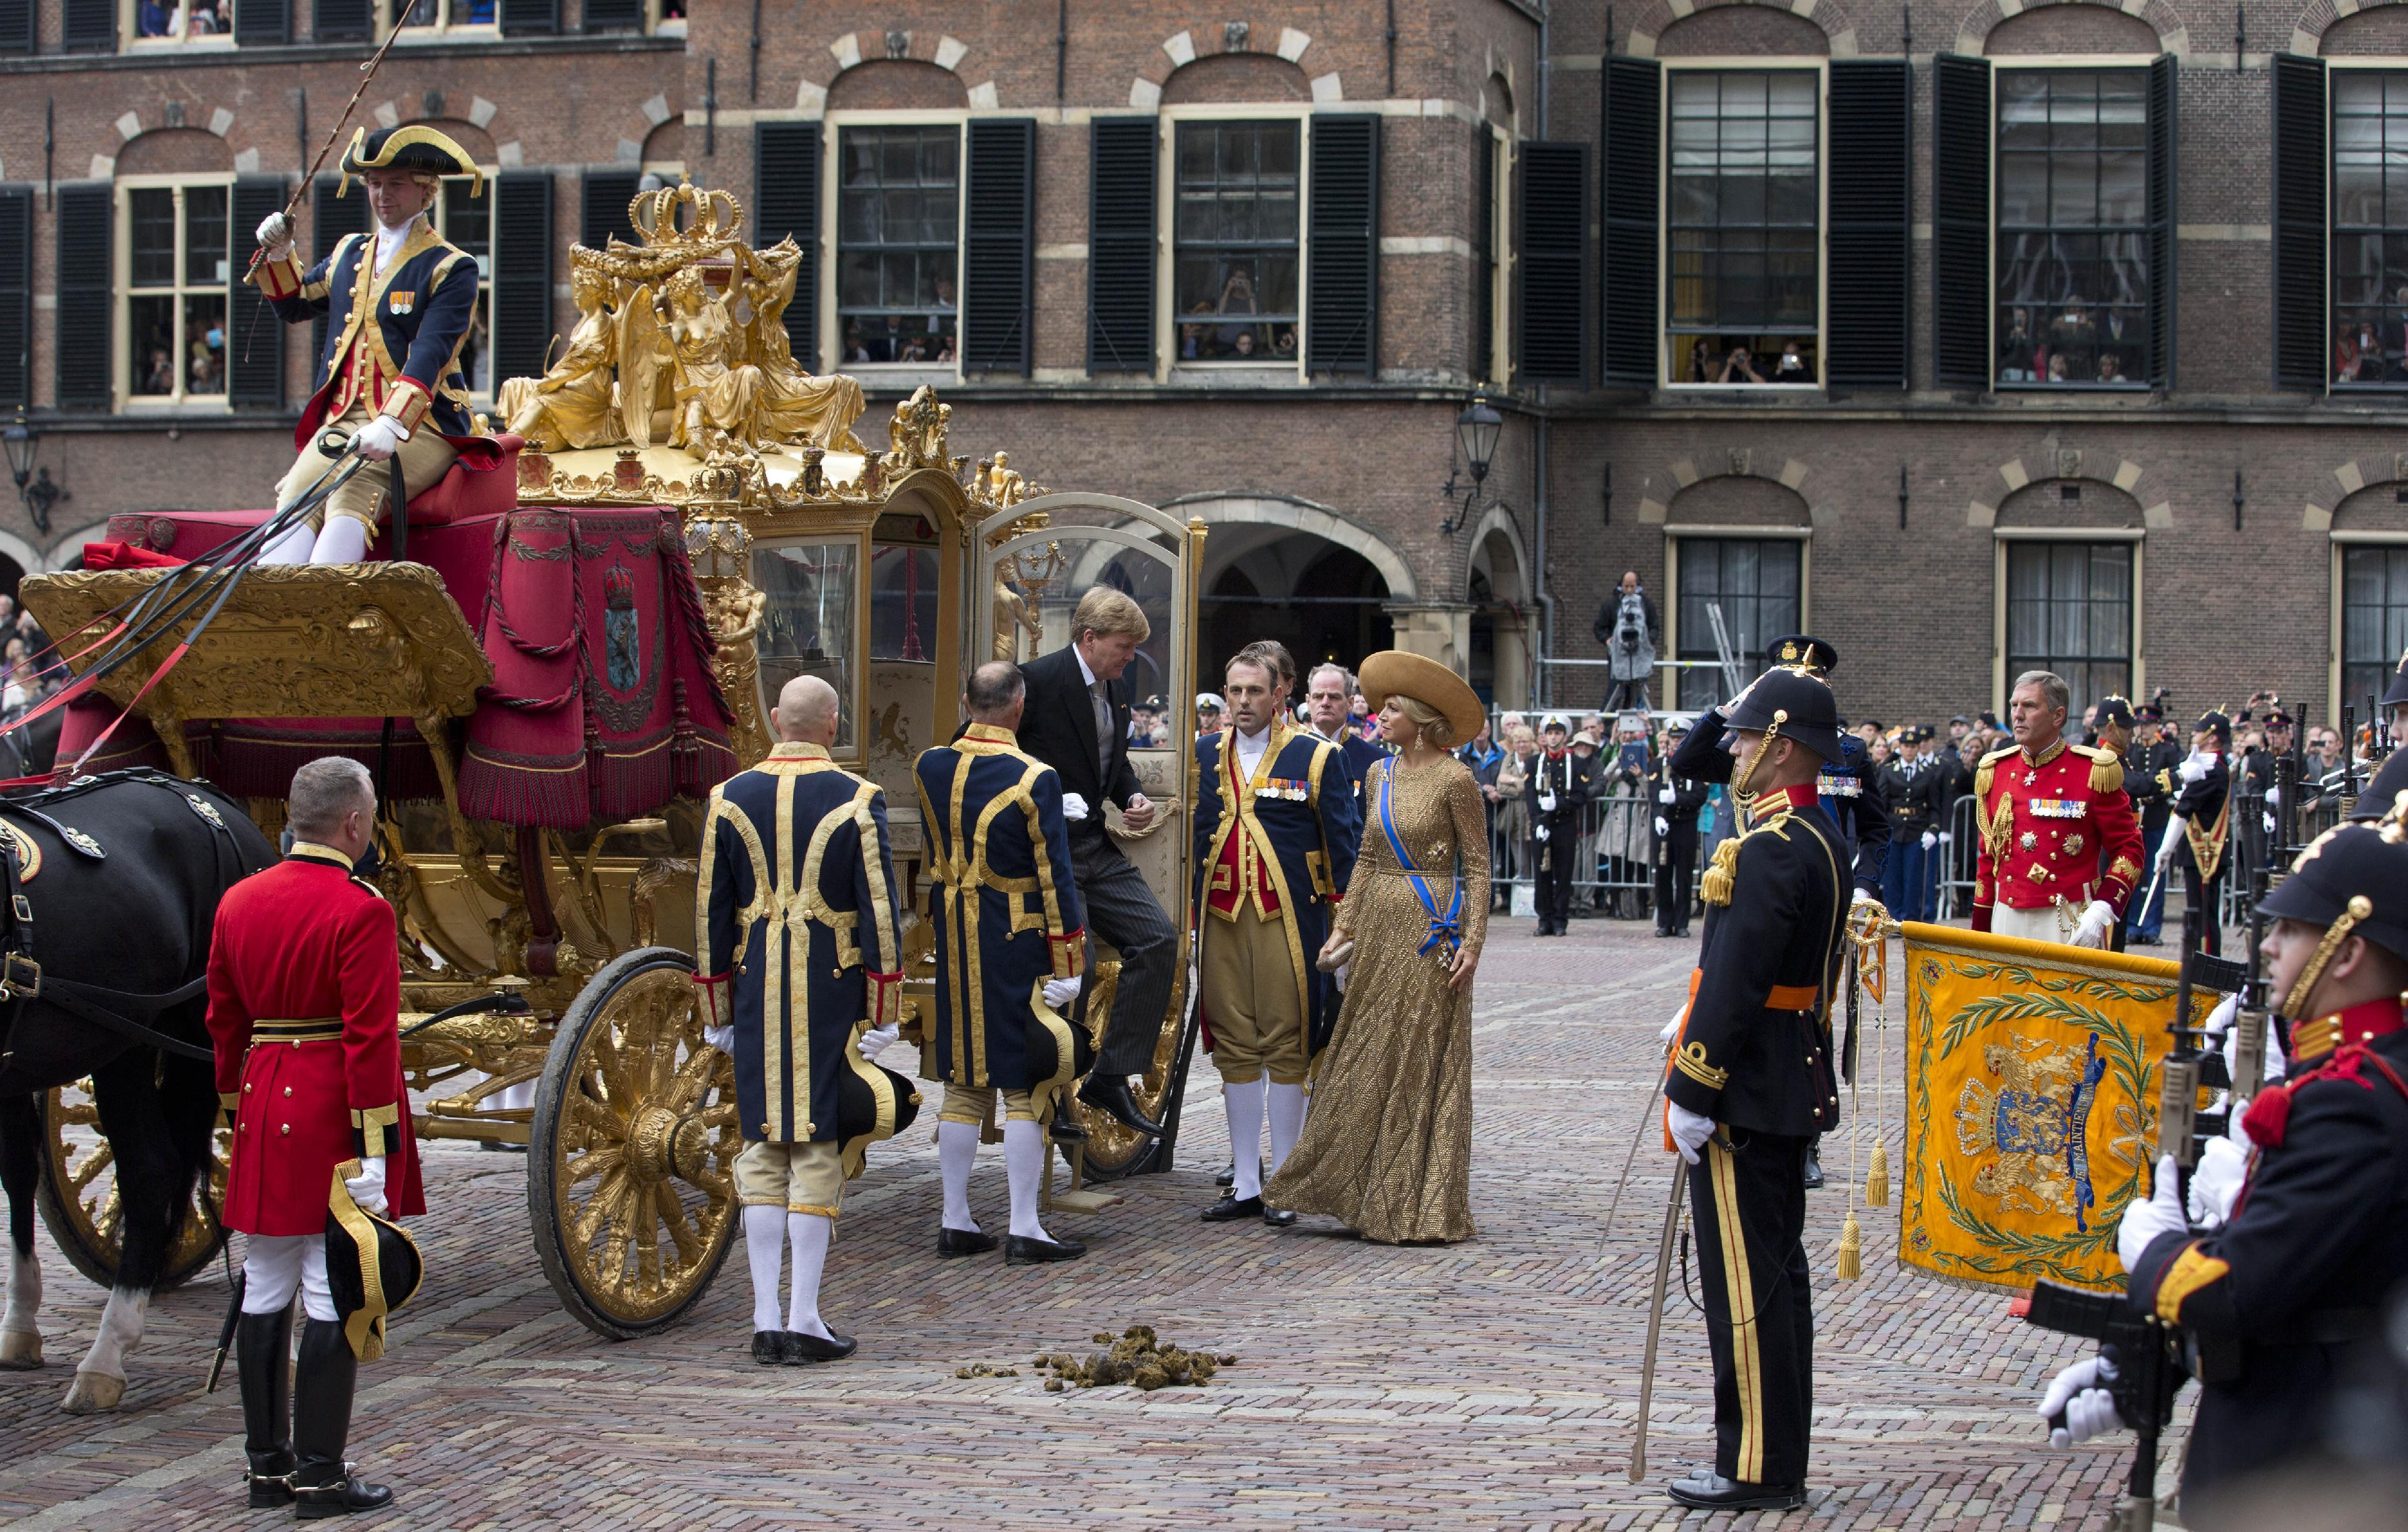 Netherlands' King Willem-Alexander, center left, and his wife Queen Maxima, center right, arrive at the Hall of Knights for the officially opening of the new parliamentary year with a speech outlining the government's plan and budget policies for the year ahead in The Hague, Netherlands, Tuesday, Sept. 17, 2013. (AP Photo/Peter Dejong)